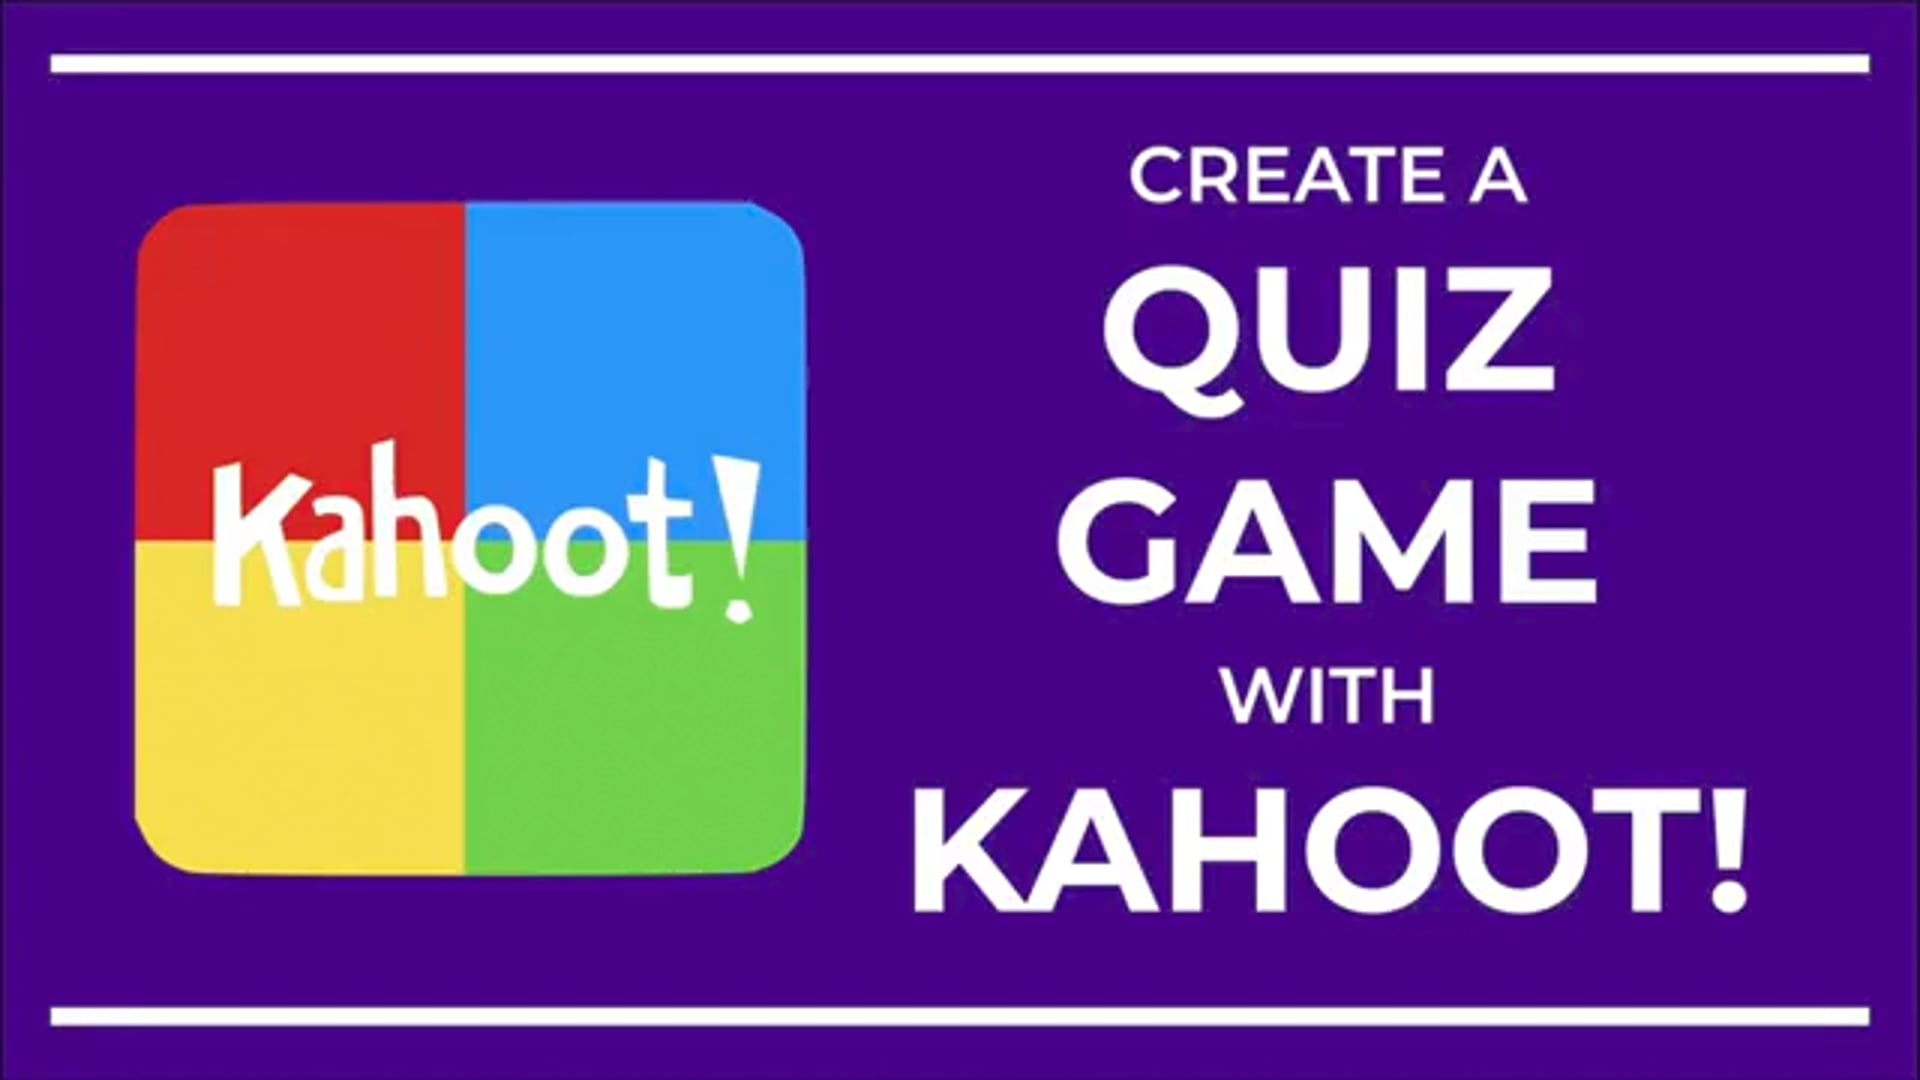 Create a Quiz Game with Kahoot!